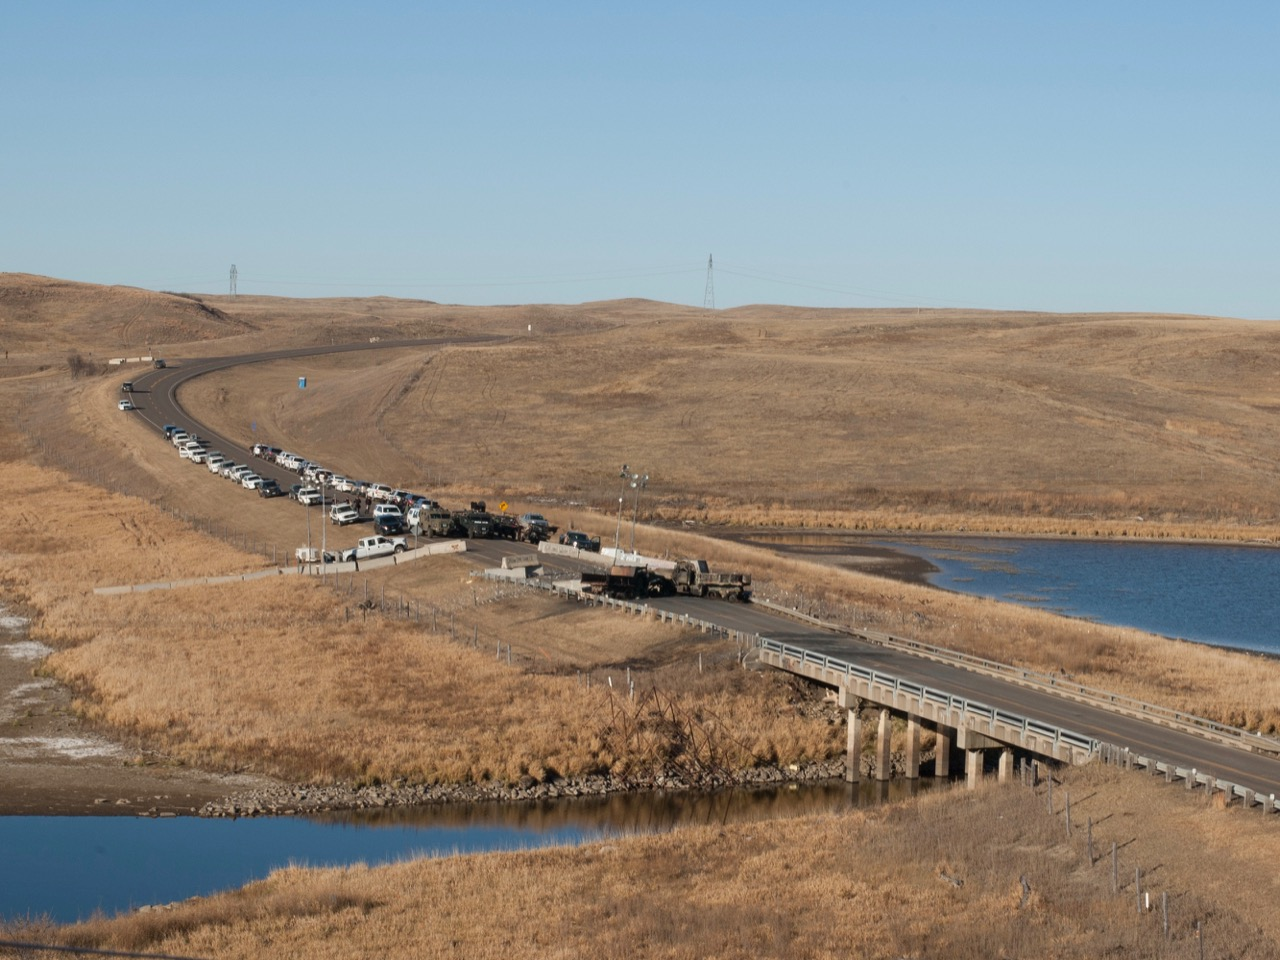 Standing Rock citizens sue county over #NoDAPL road blockade